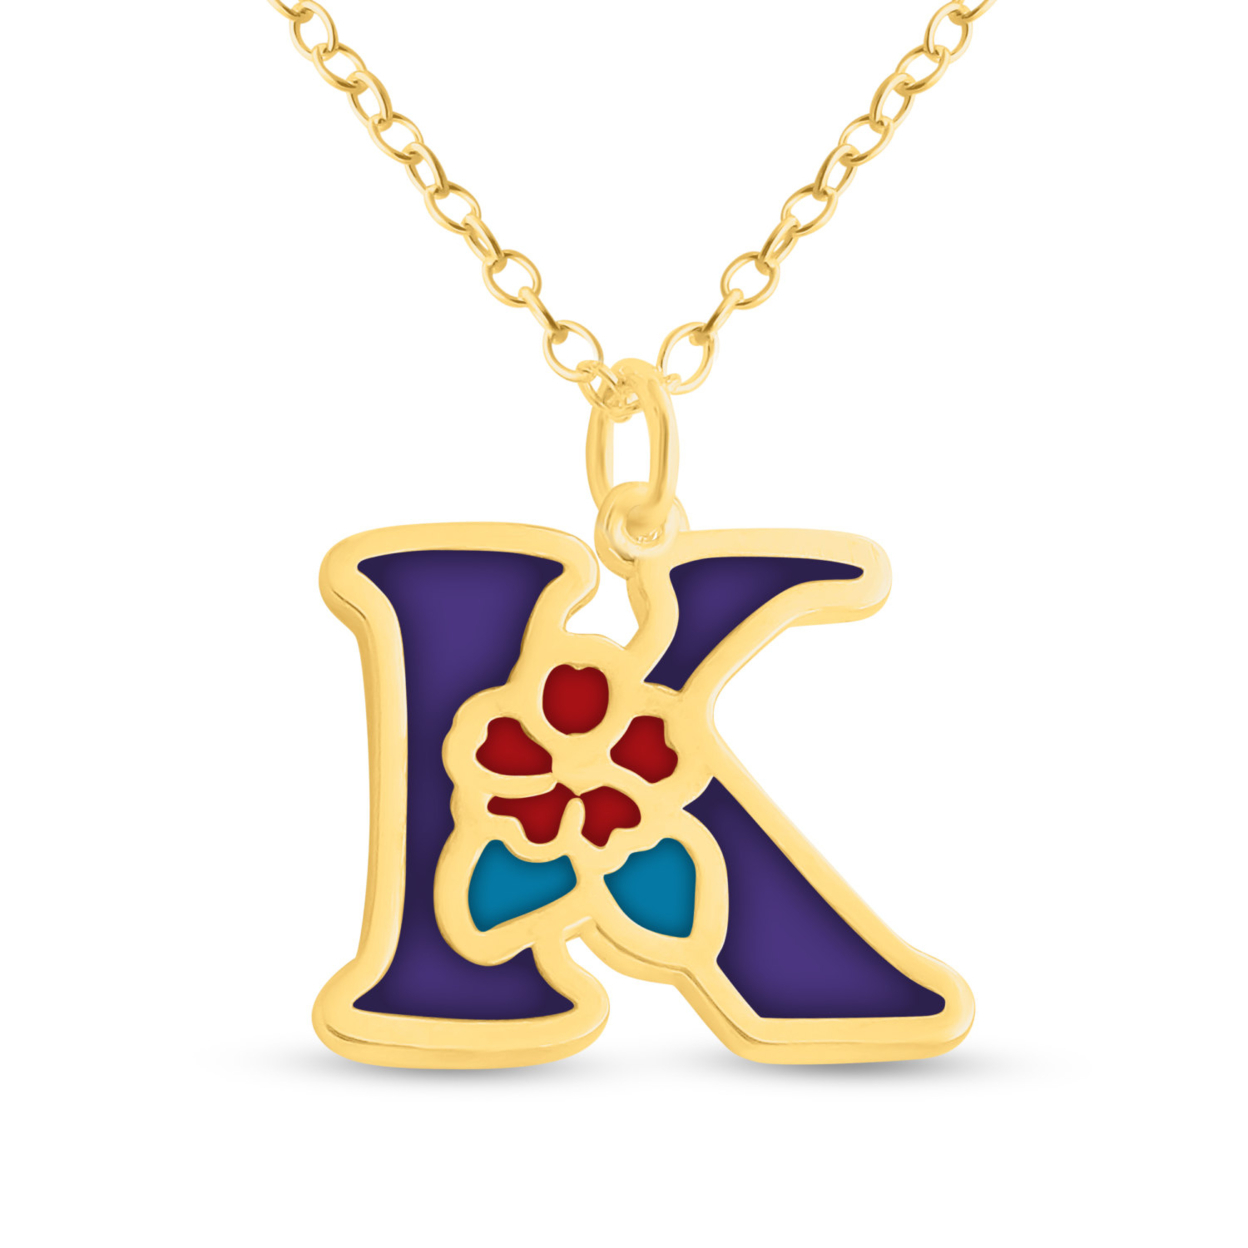 Purple Enameled Initial Letter K With Flower Colors Charm Pendant Necklace #14k Gold Plated Over 925 Sterling Silver #azaggi N0854g_k_v3 12 Child